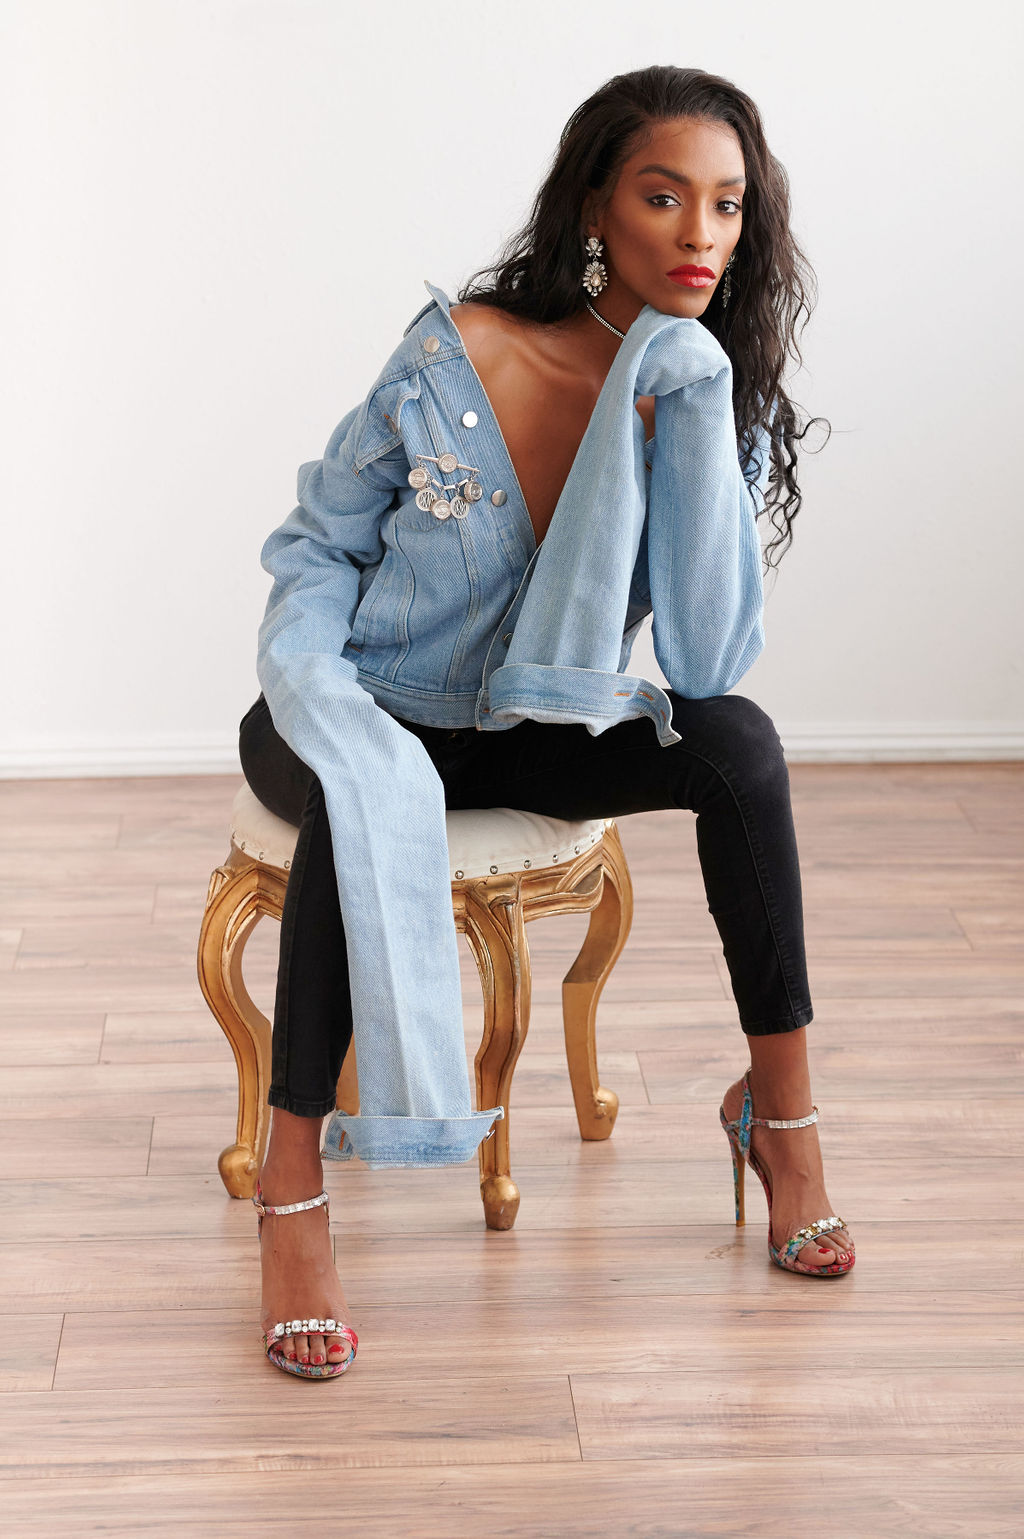 annjulia smalls-y project-sheldon botler photography-styled by melissa-brown skin model-denim-elongated sleeves-fashion